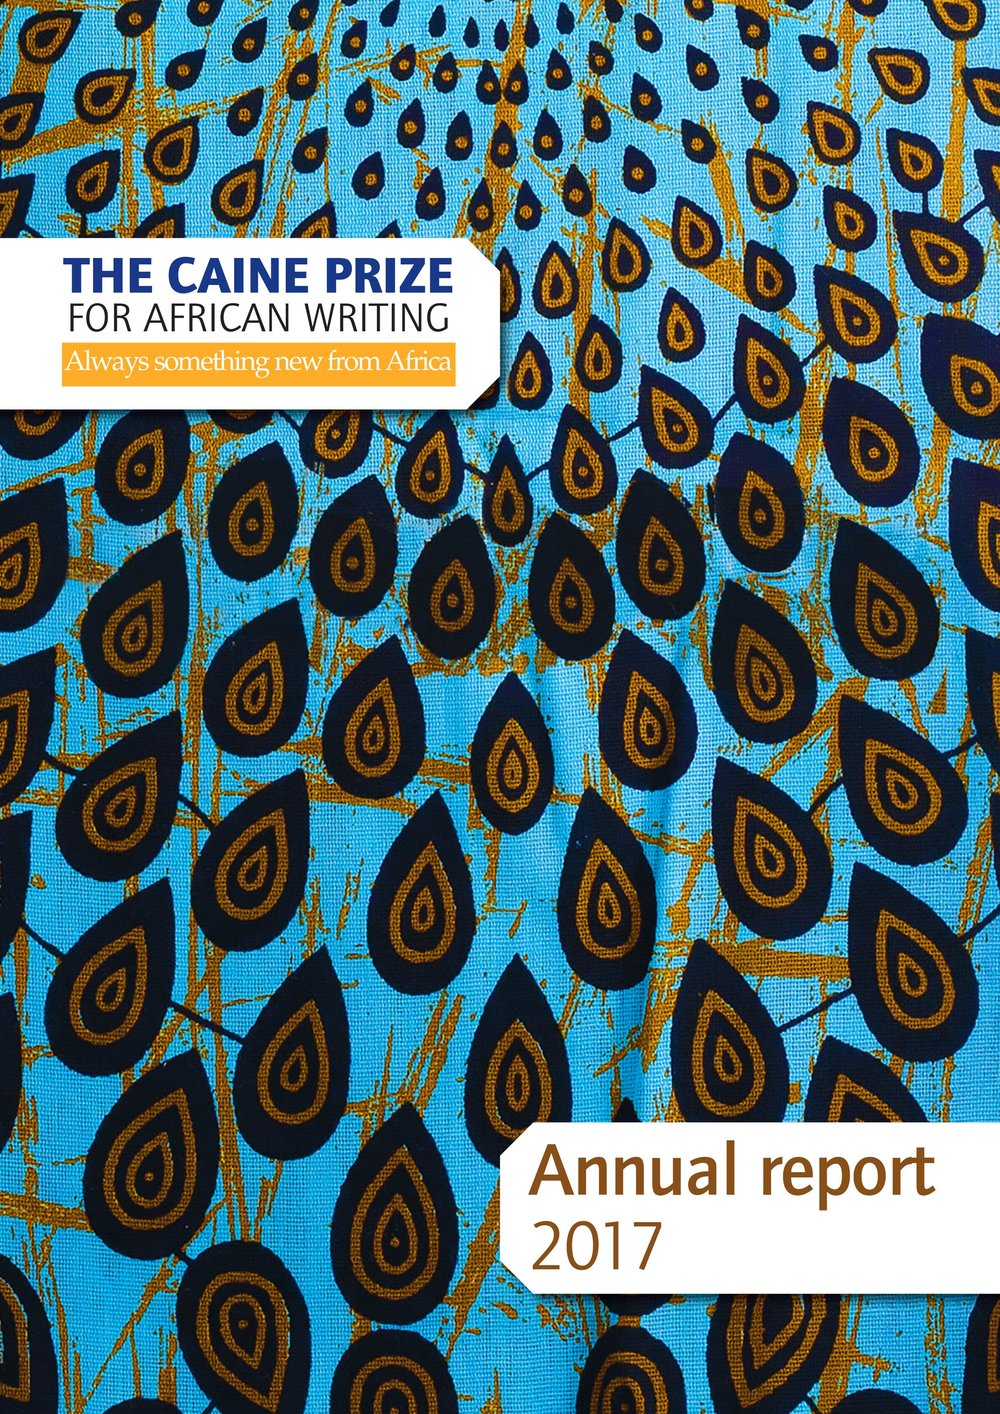 Caine Prize Annual Report 2017 - cover.jpg